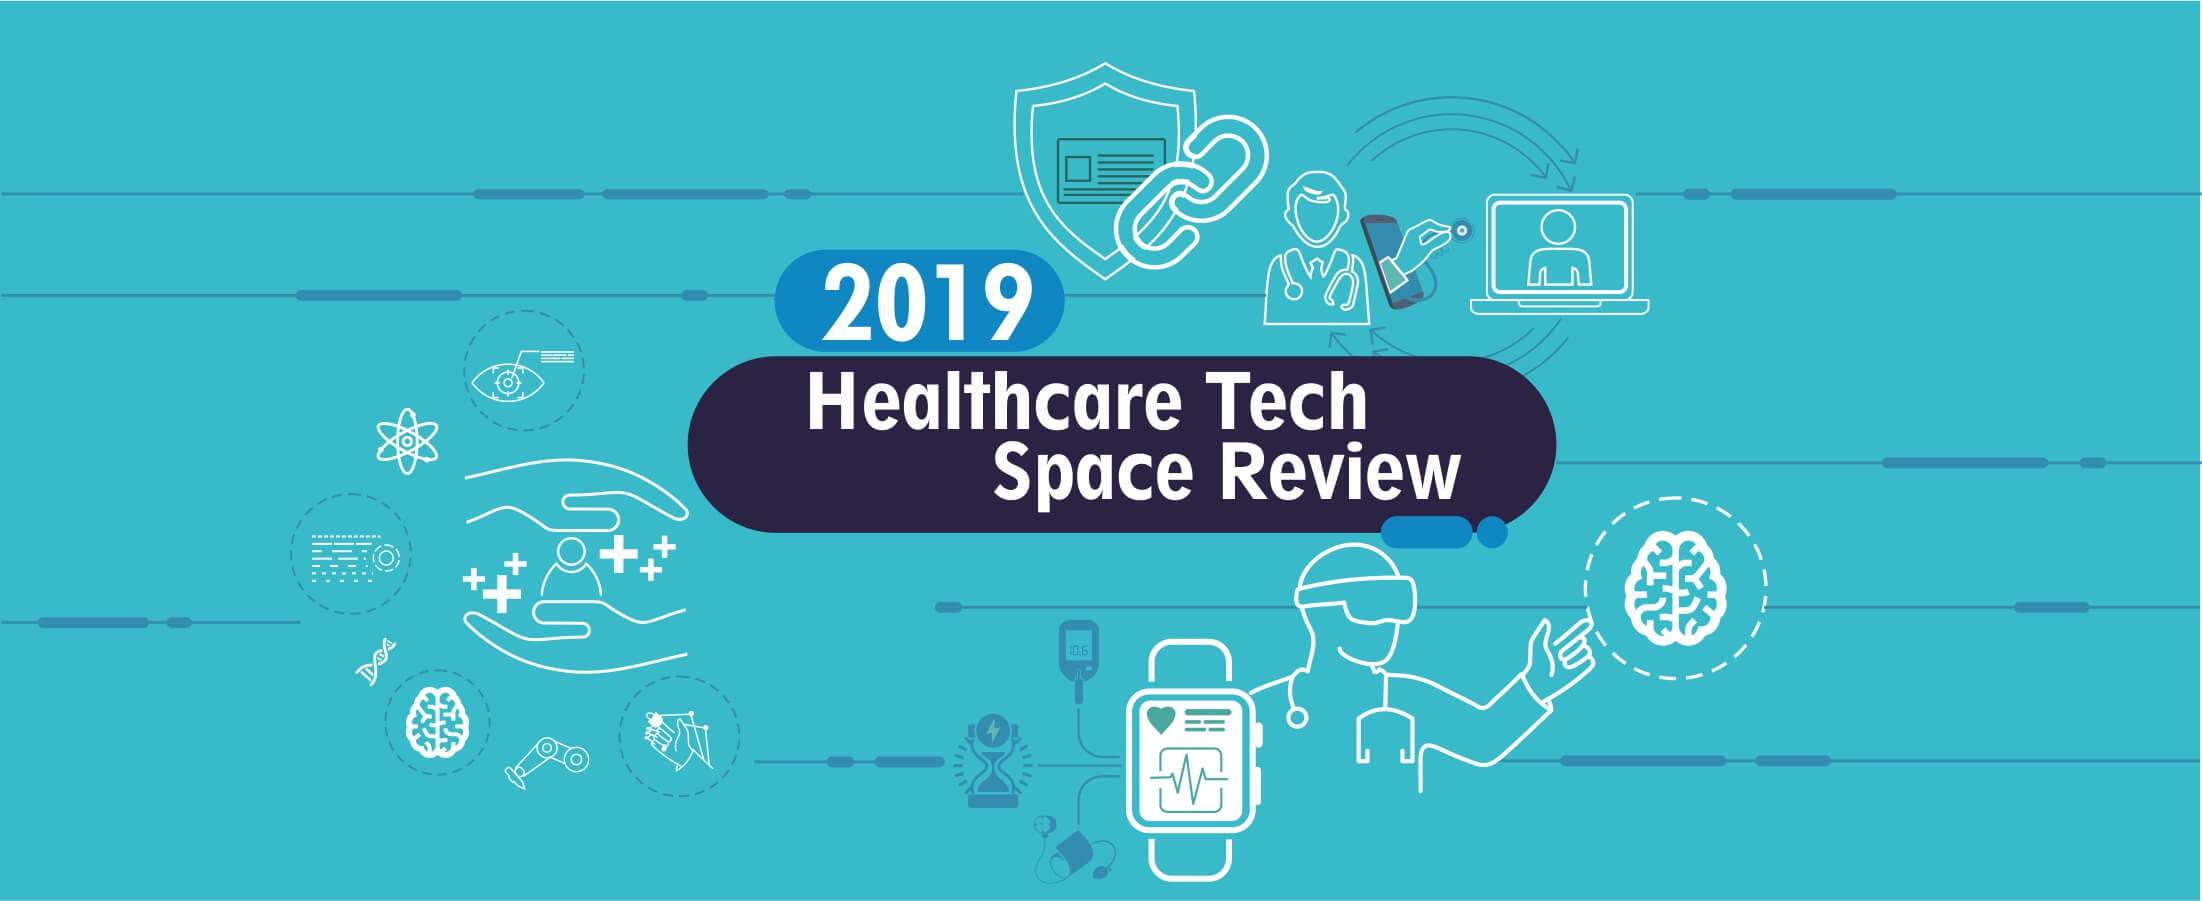 Healthcare Tech Space Review 2019